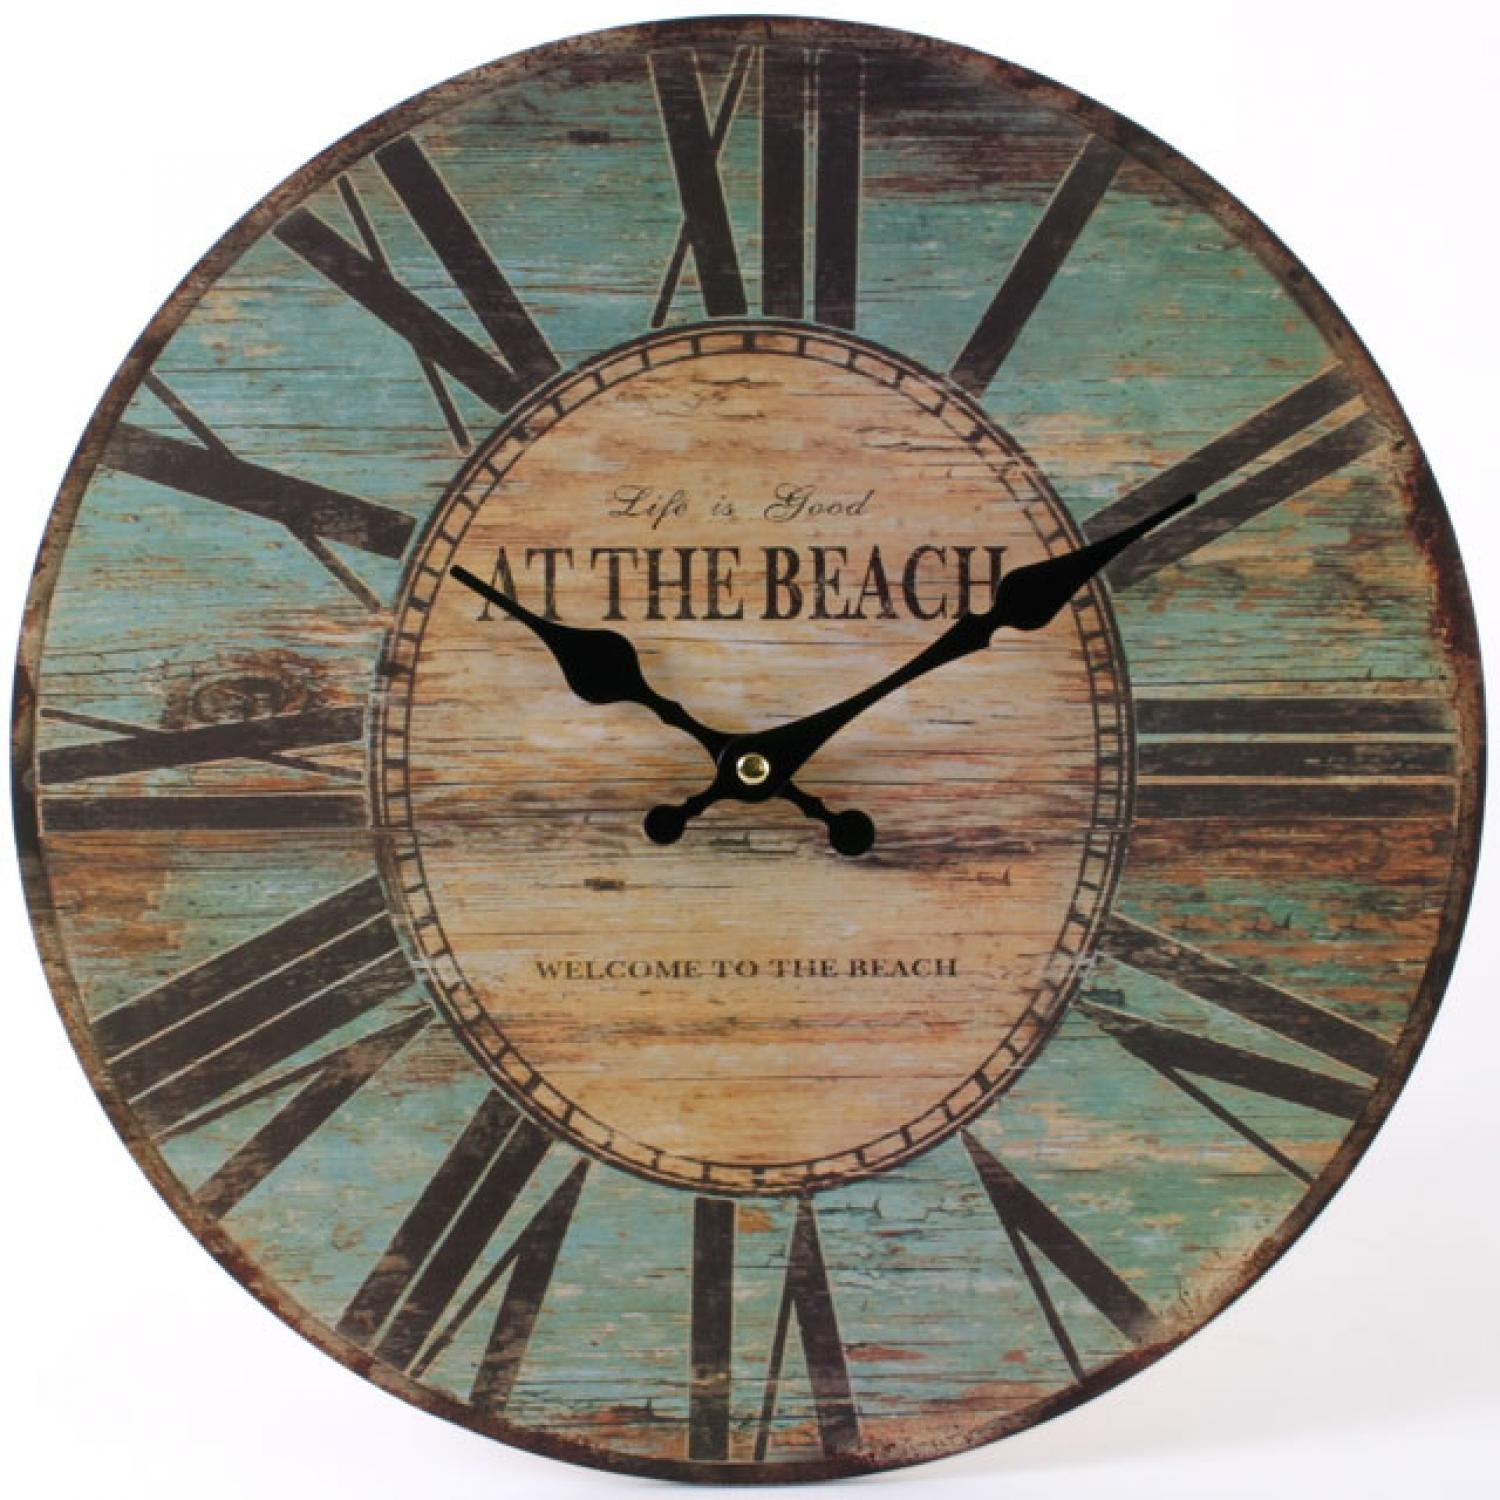 At the Beach Vintage Rustic Clock